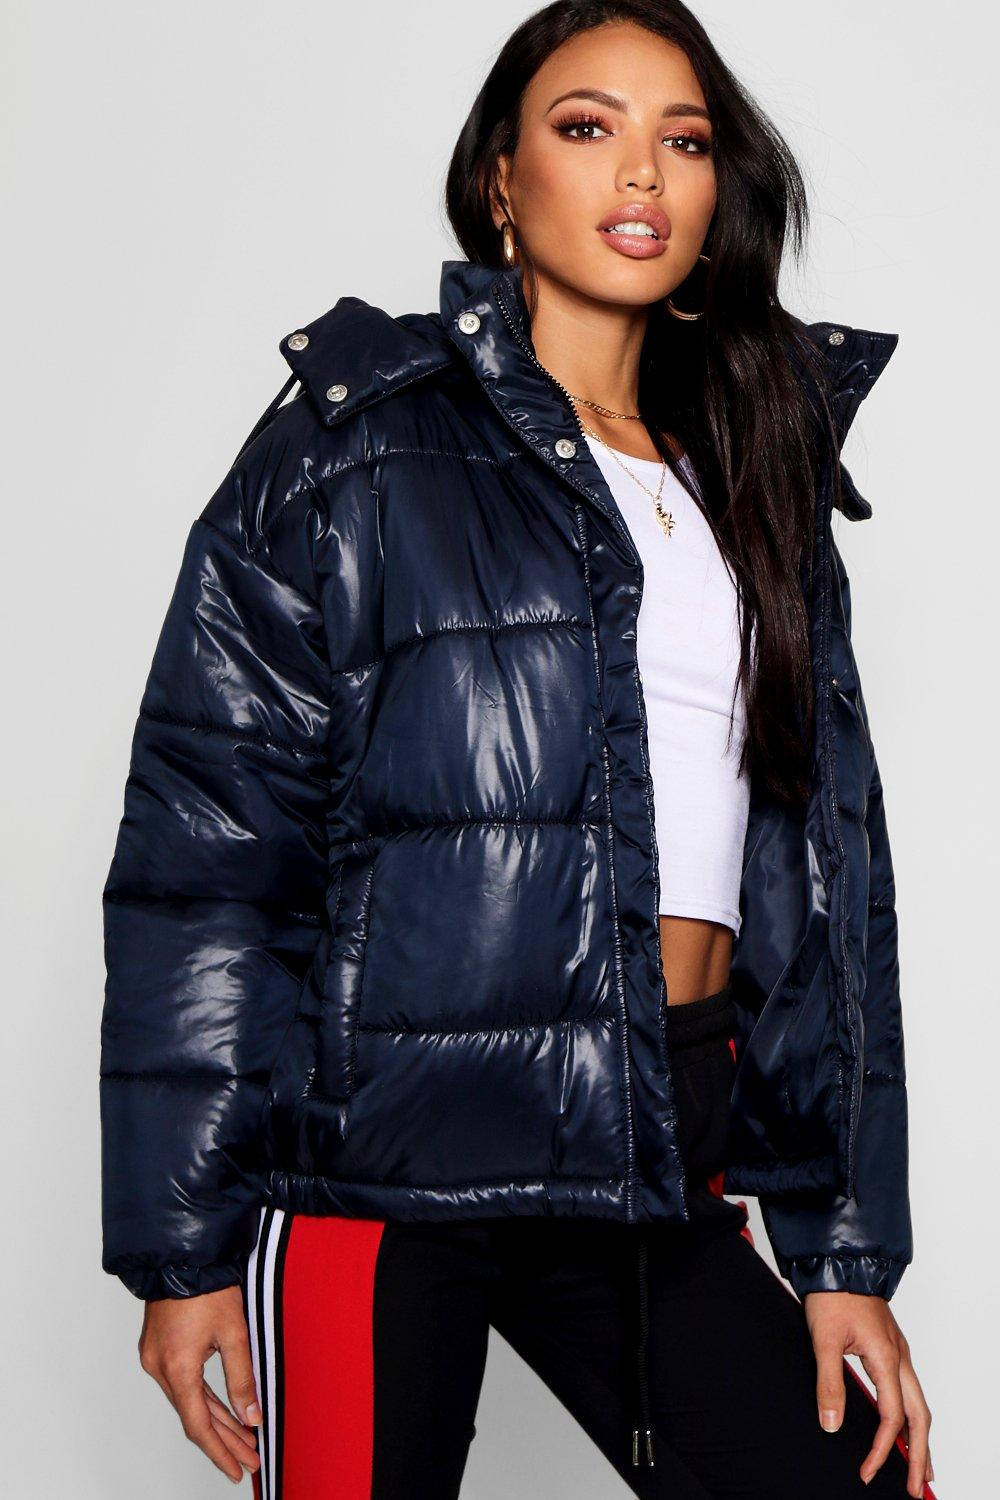 Puffer Cire Cire Cire Hooded Puffer Hooded navy navy Jacket Jacket Cire Hooded Hooded Puffer Jacket navy qSvCw0C